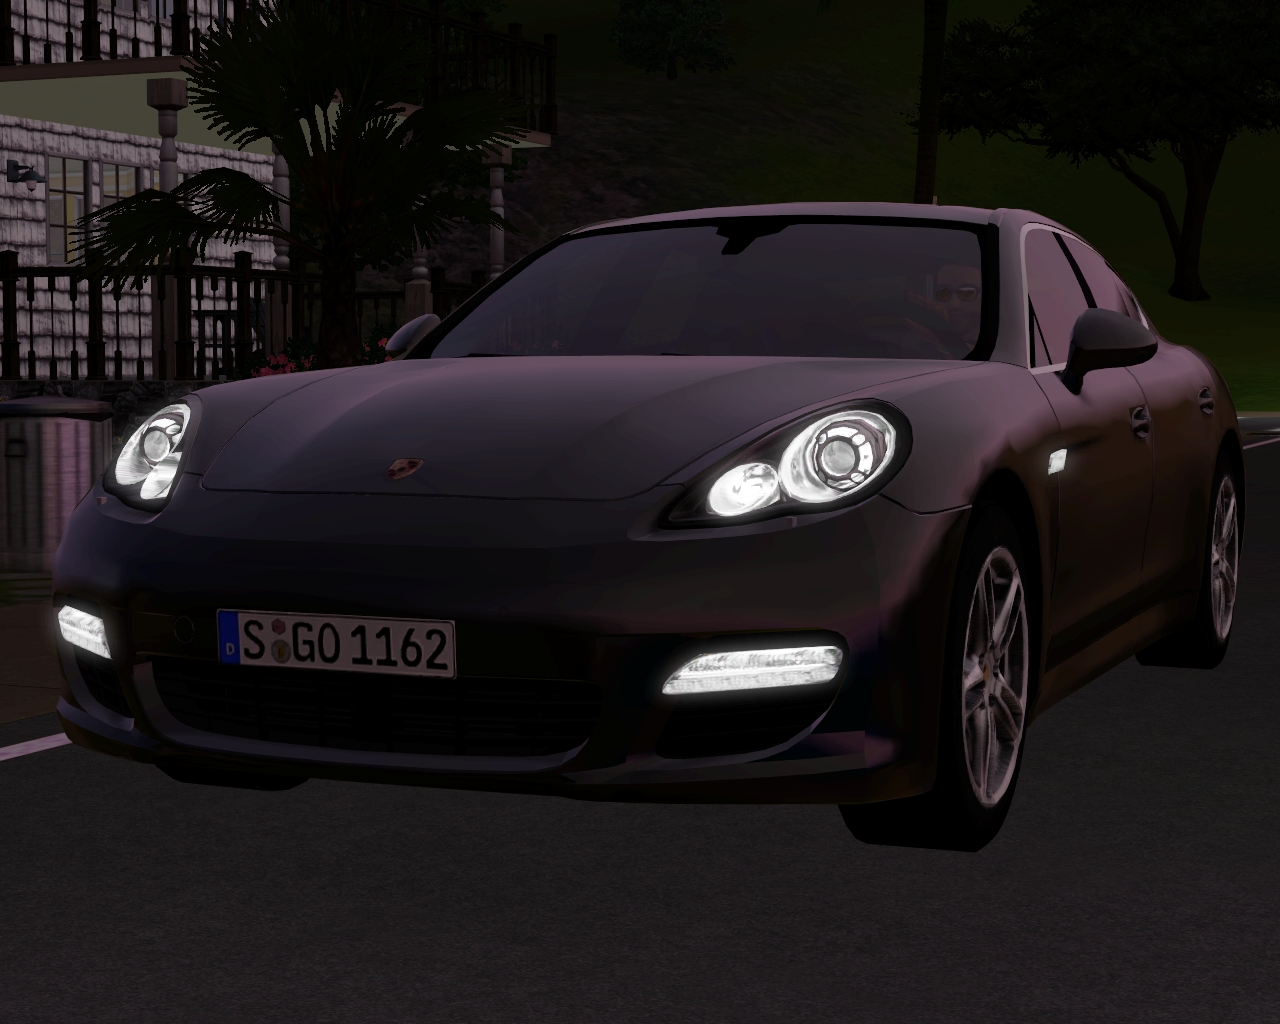 2011 Porsche Panamera Turbo by Fresh-Prince